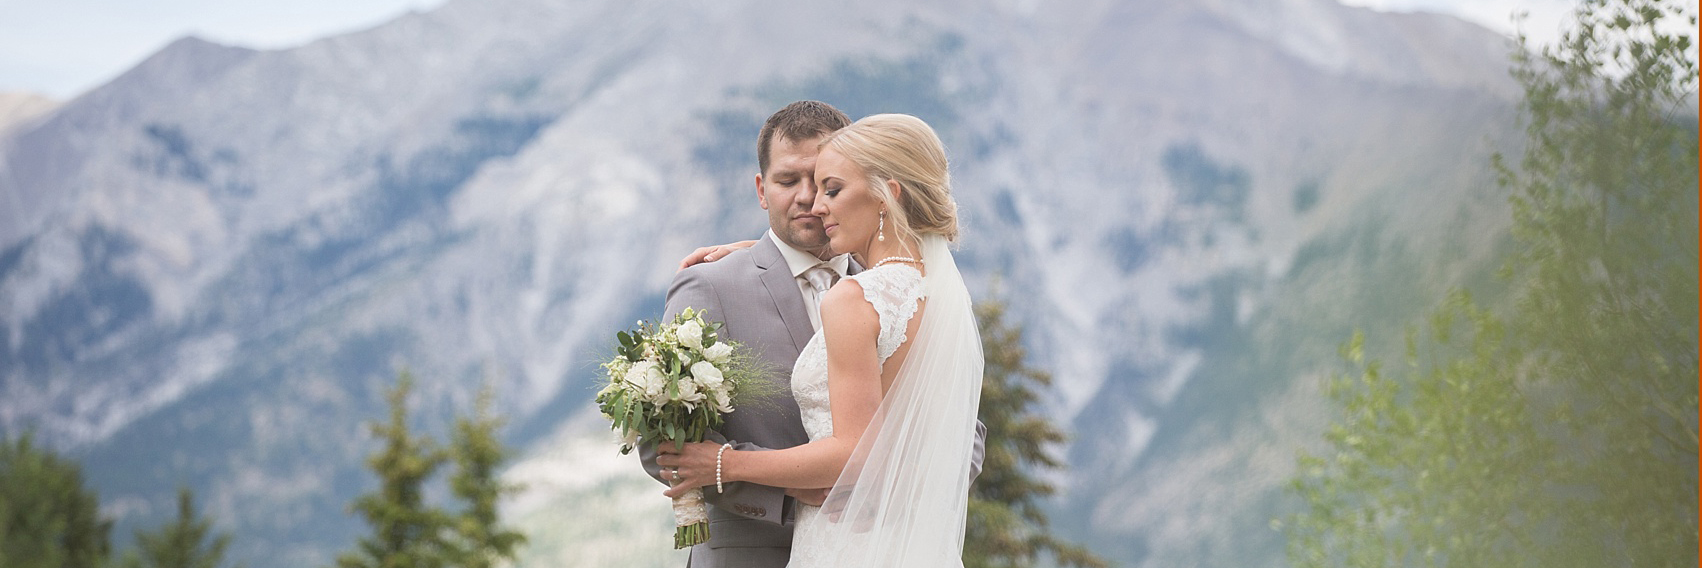 quarry lake wedding photograph